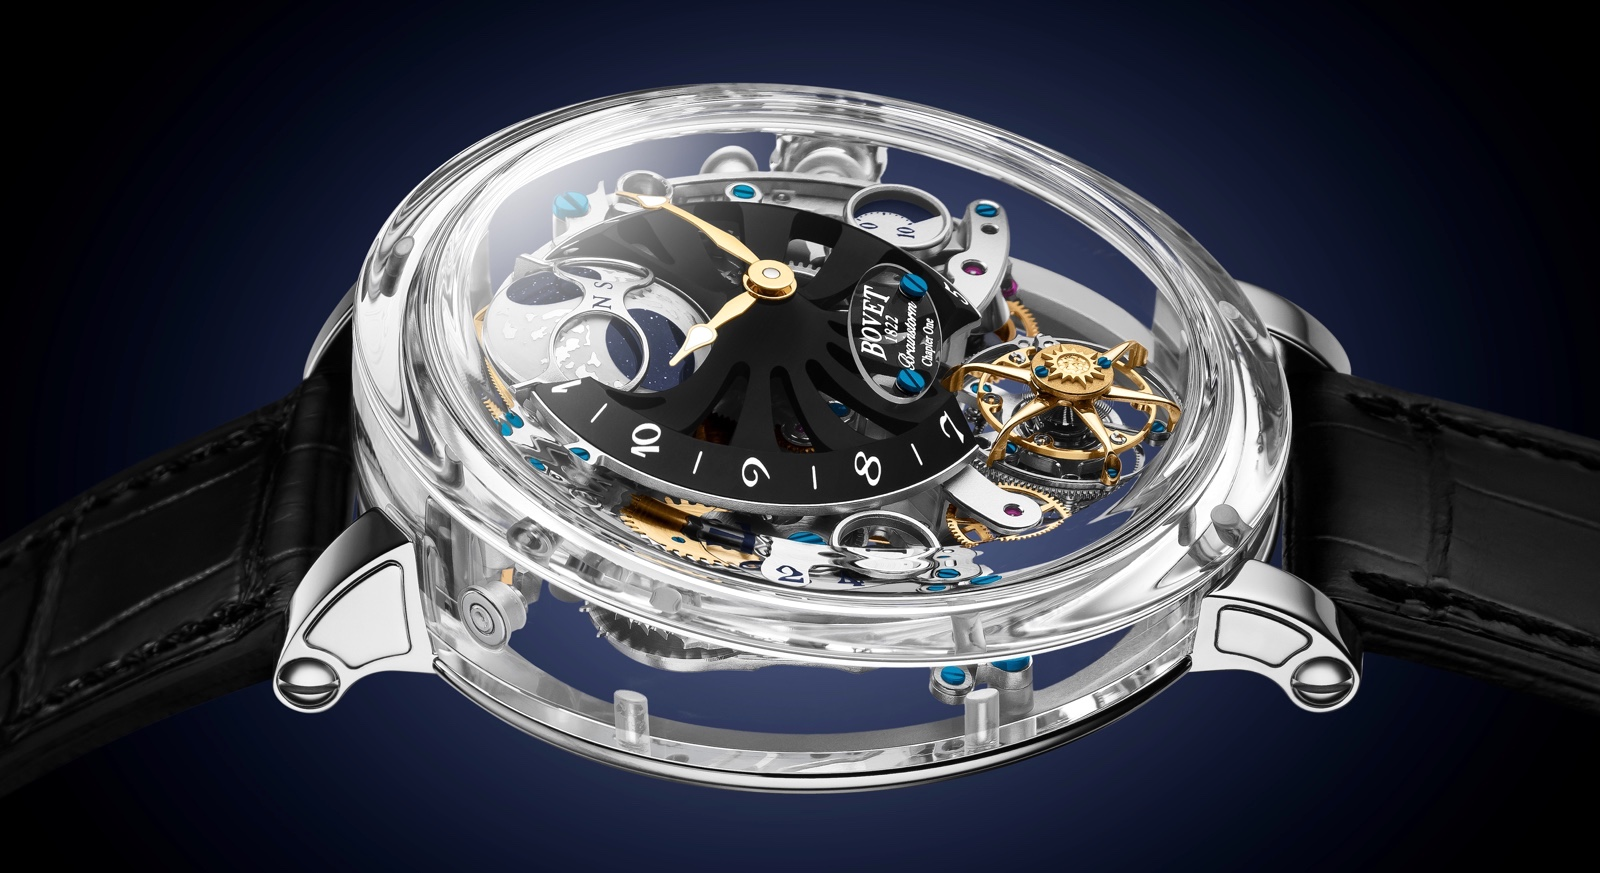 Bovet 1822 Récital 26 Collection SIHH 2019